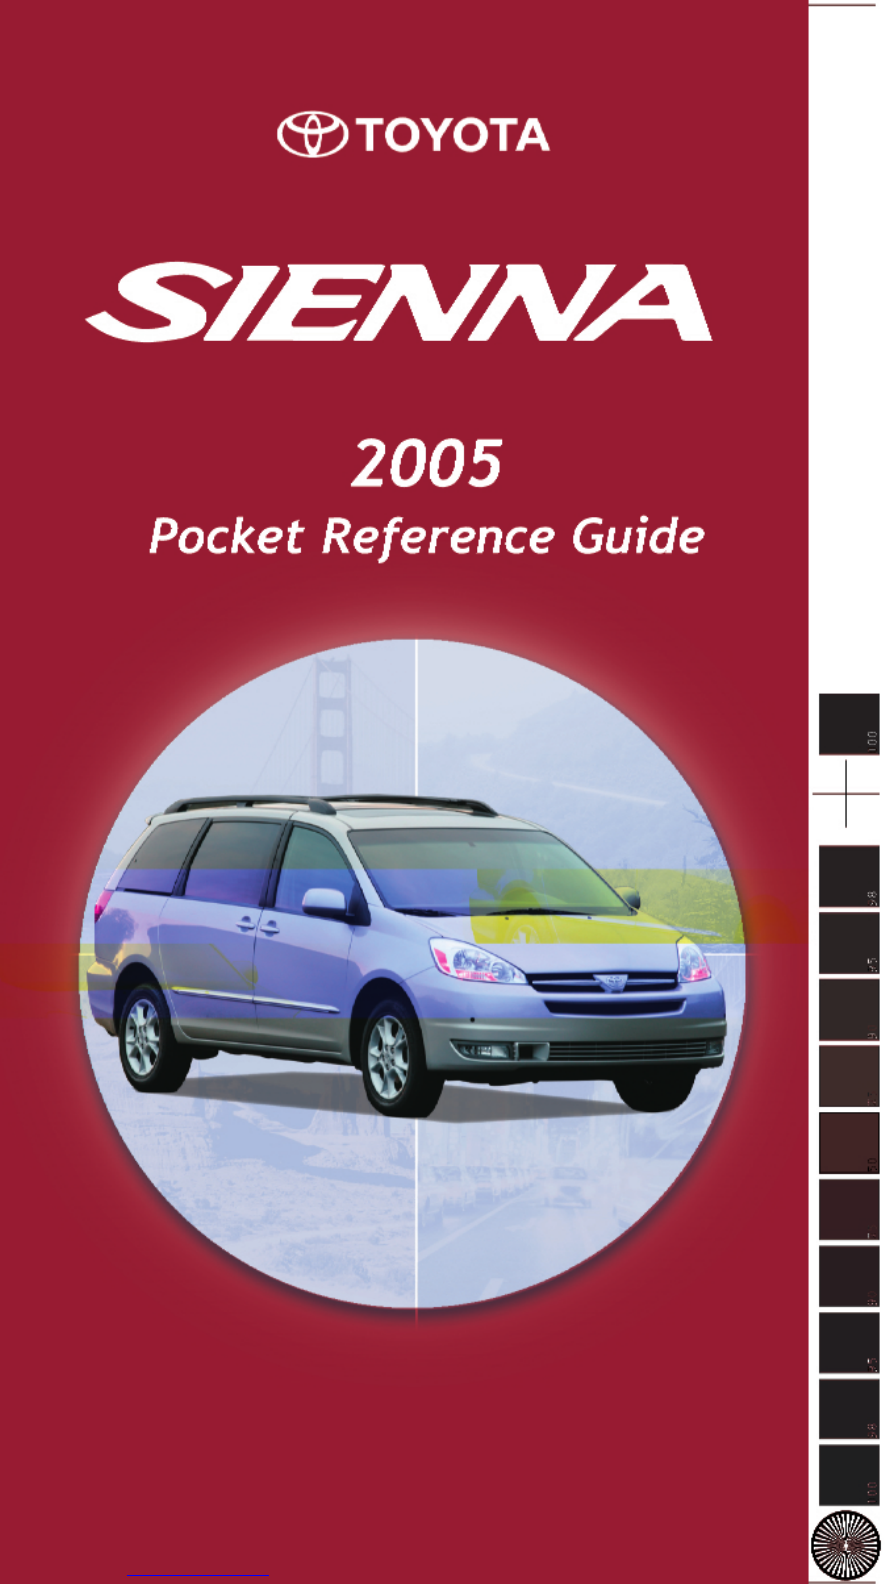 Toyota Sienna 2010-2018 Owners Manual: Capacity and distribution